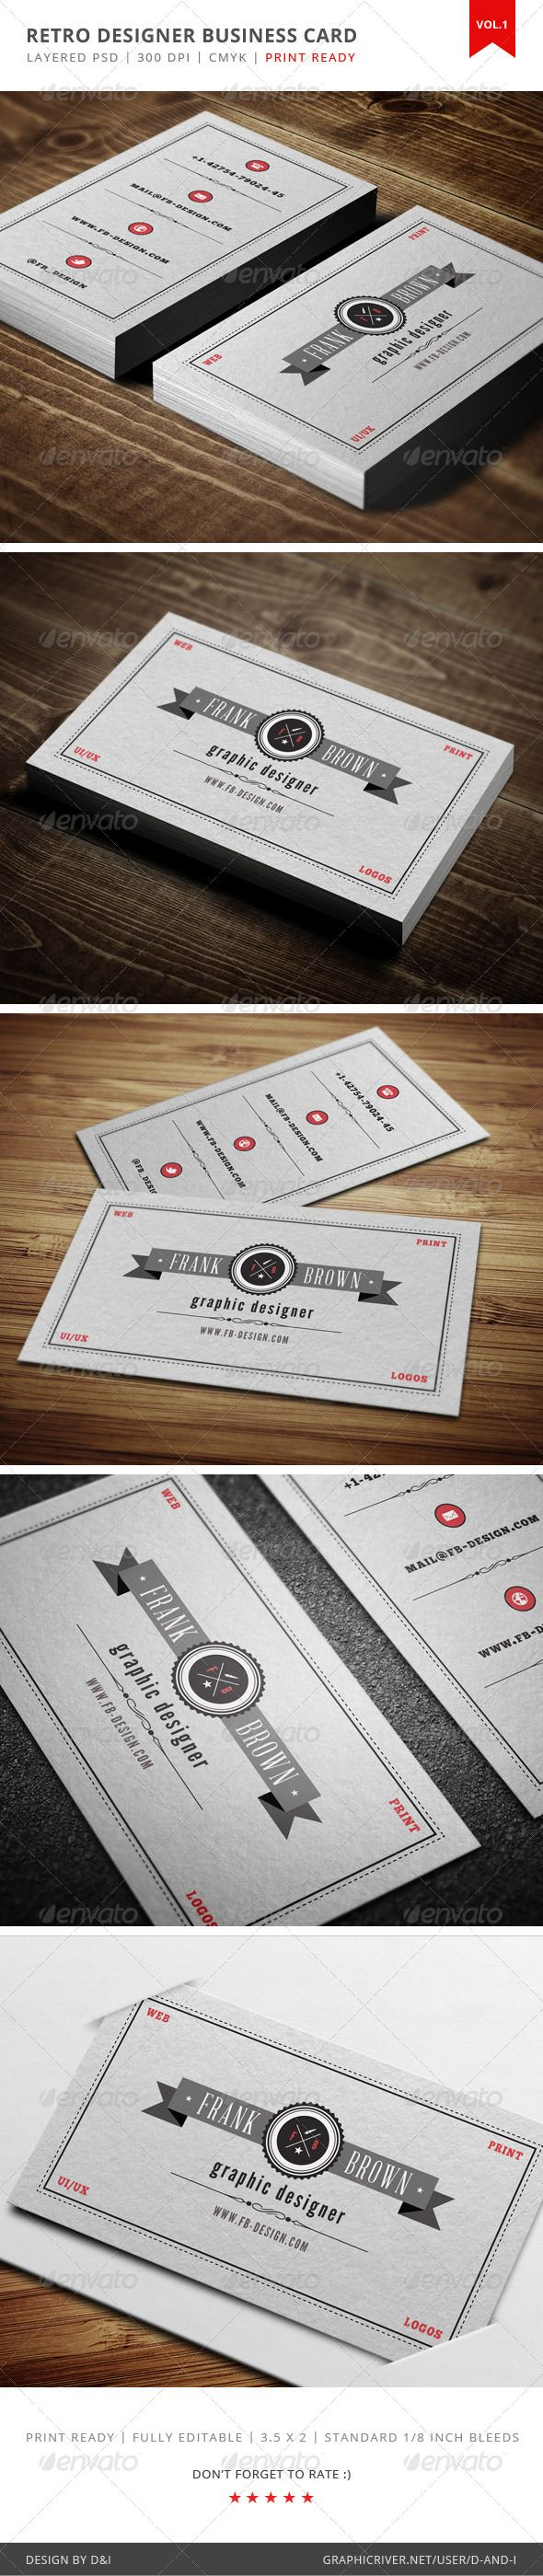 155 best business cards images on pinterest business card design print templates graphic designer business card graphicriver reheart Choice Image